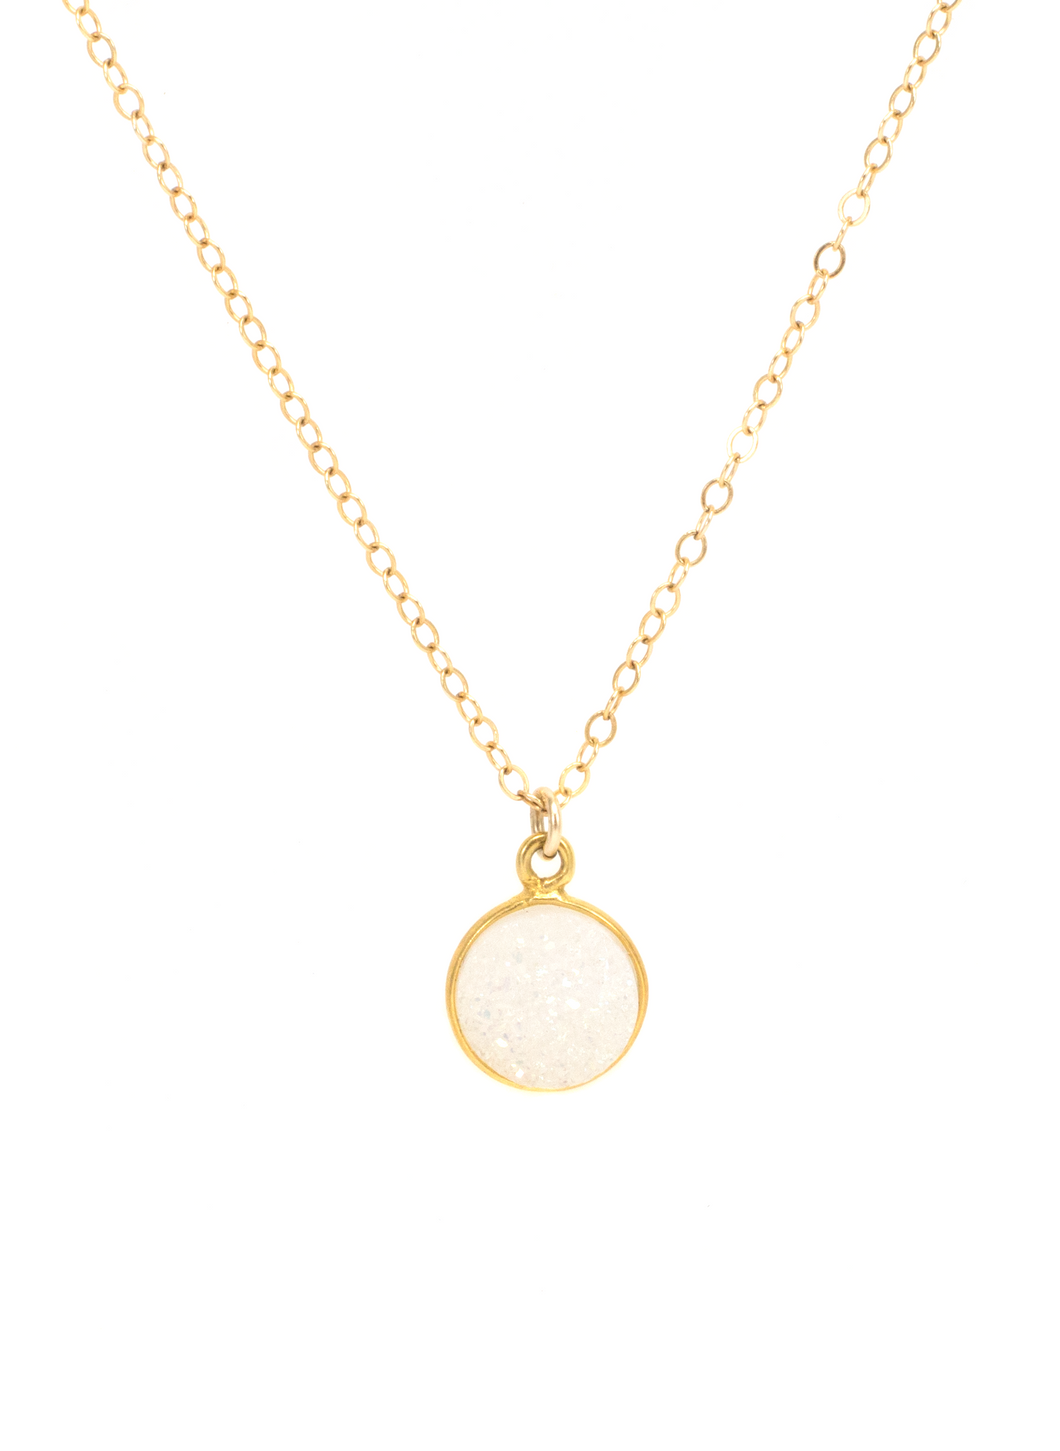 WHITE DRUZY NECKLACE IN GOLD